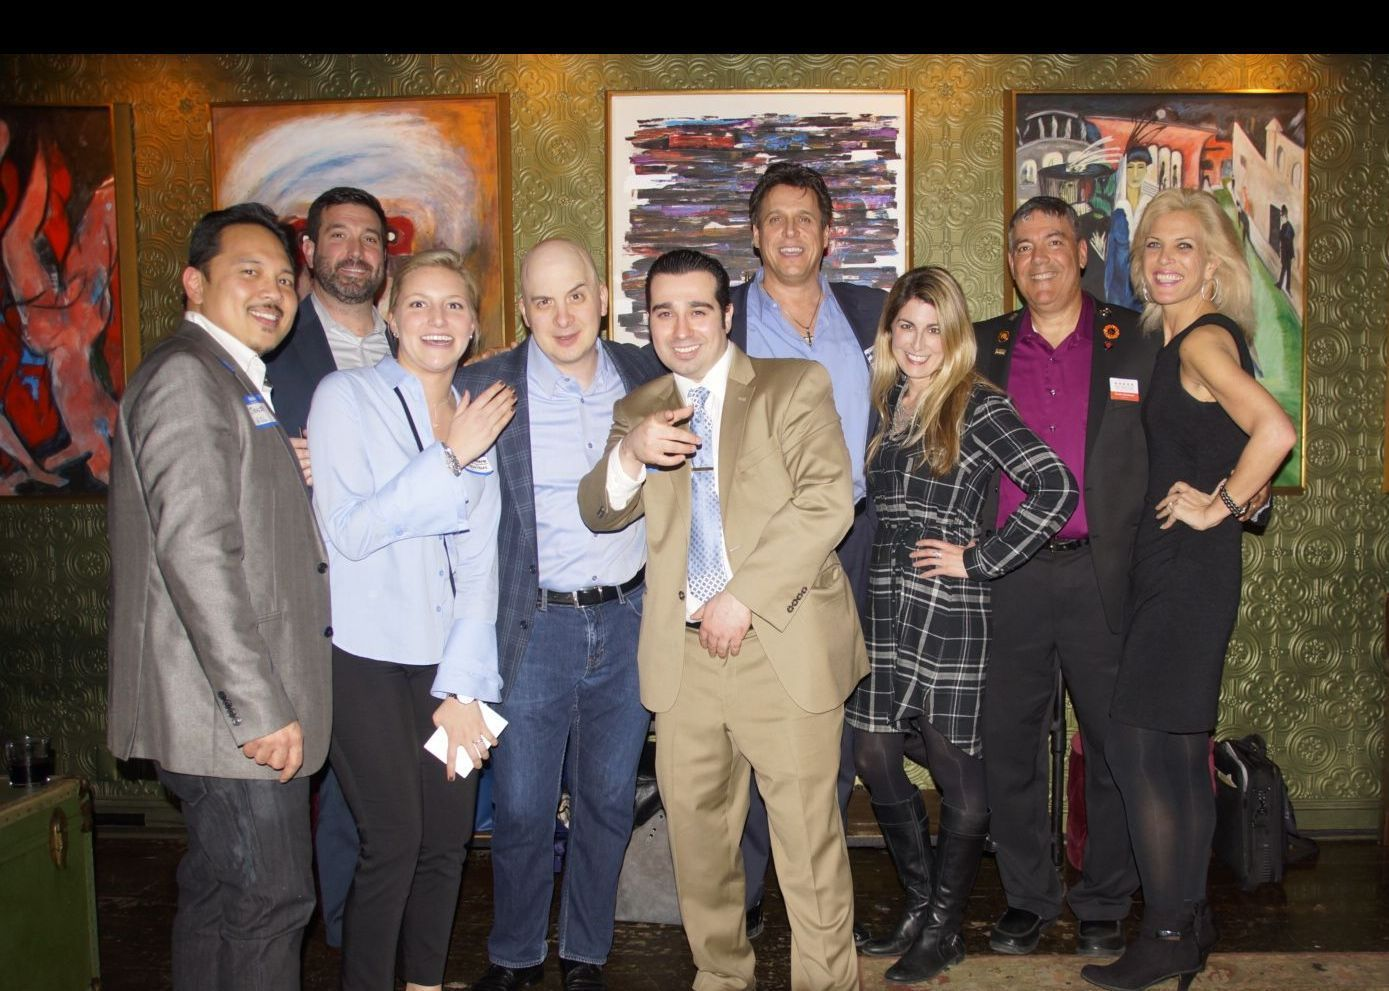 CardXchange Chicago: Business & Social Networking